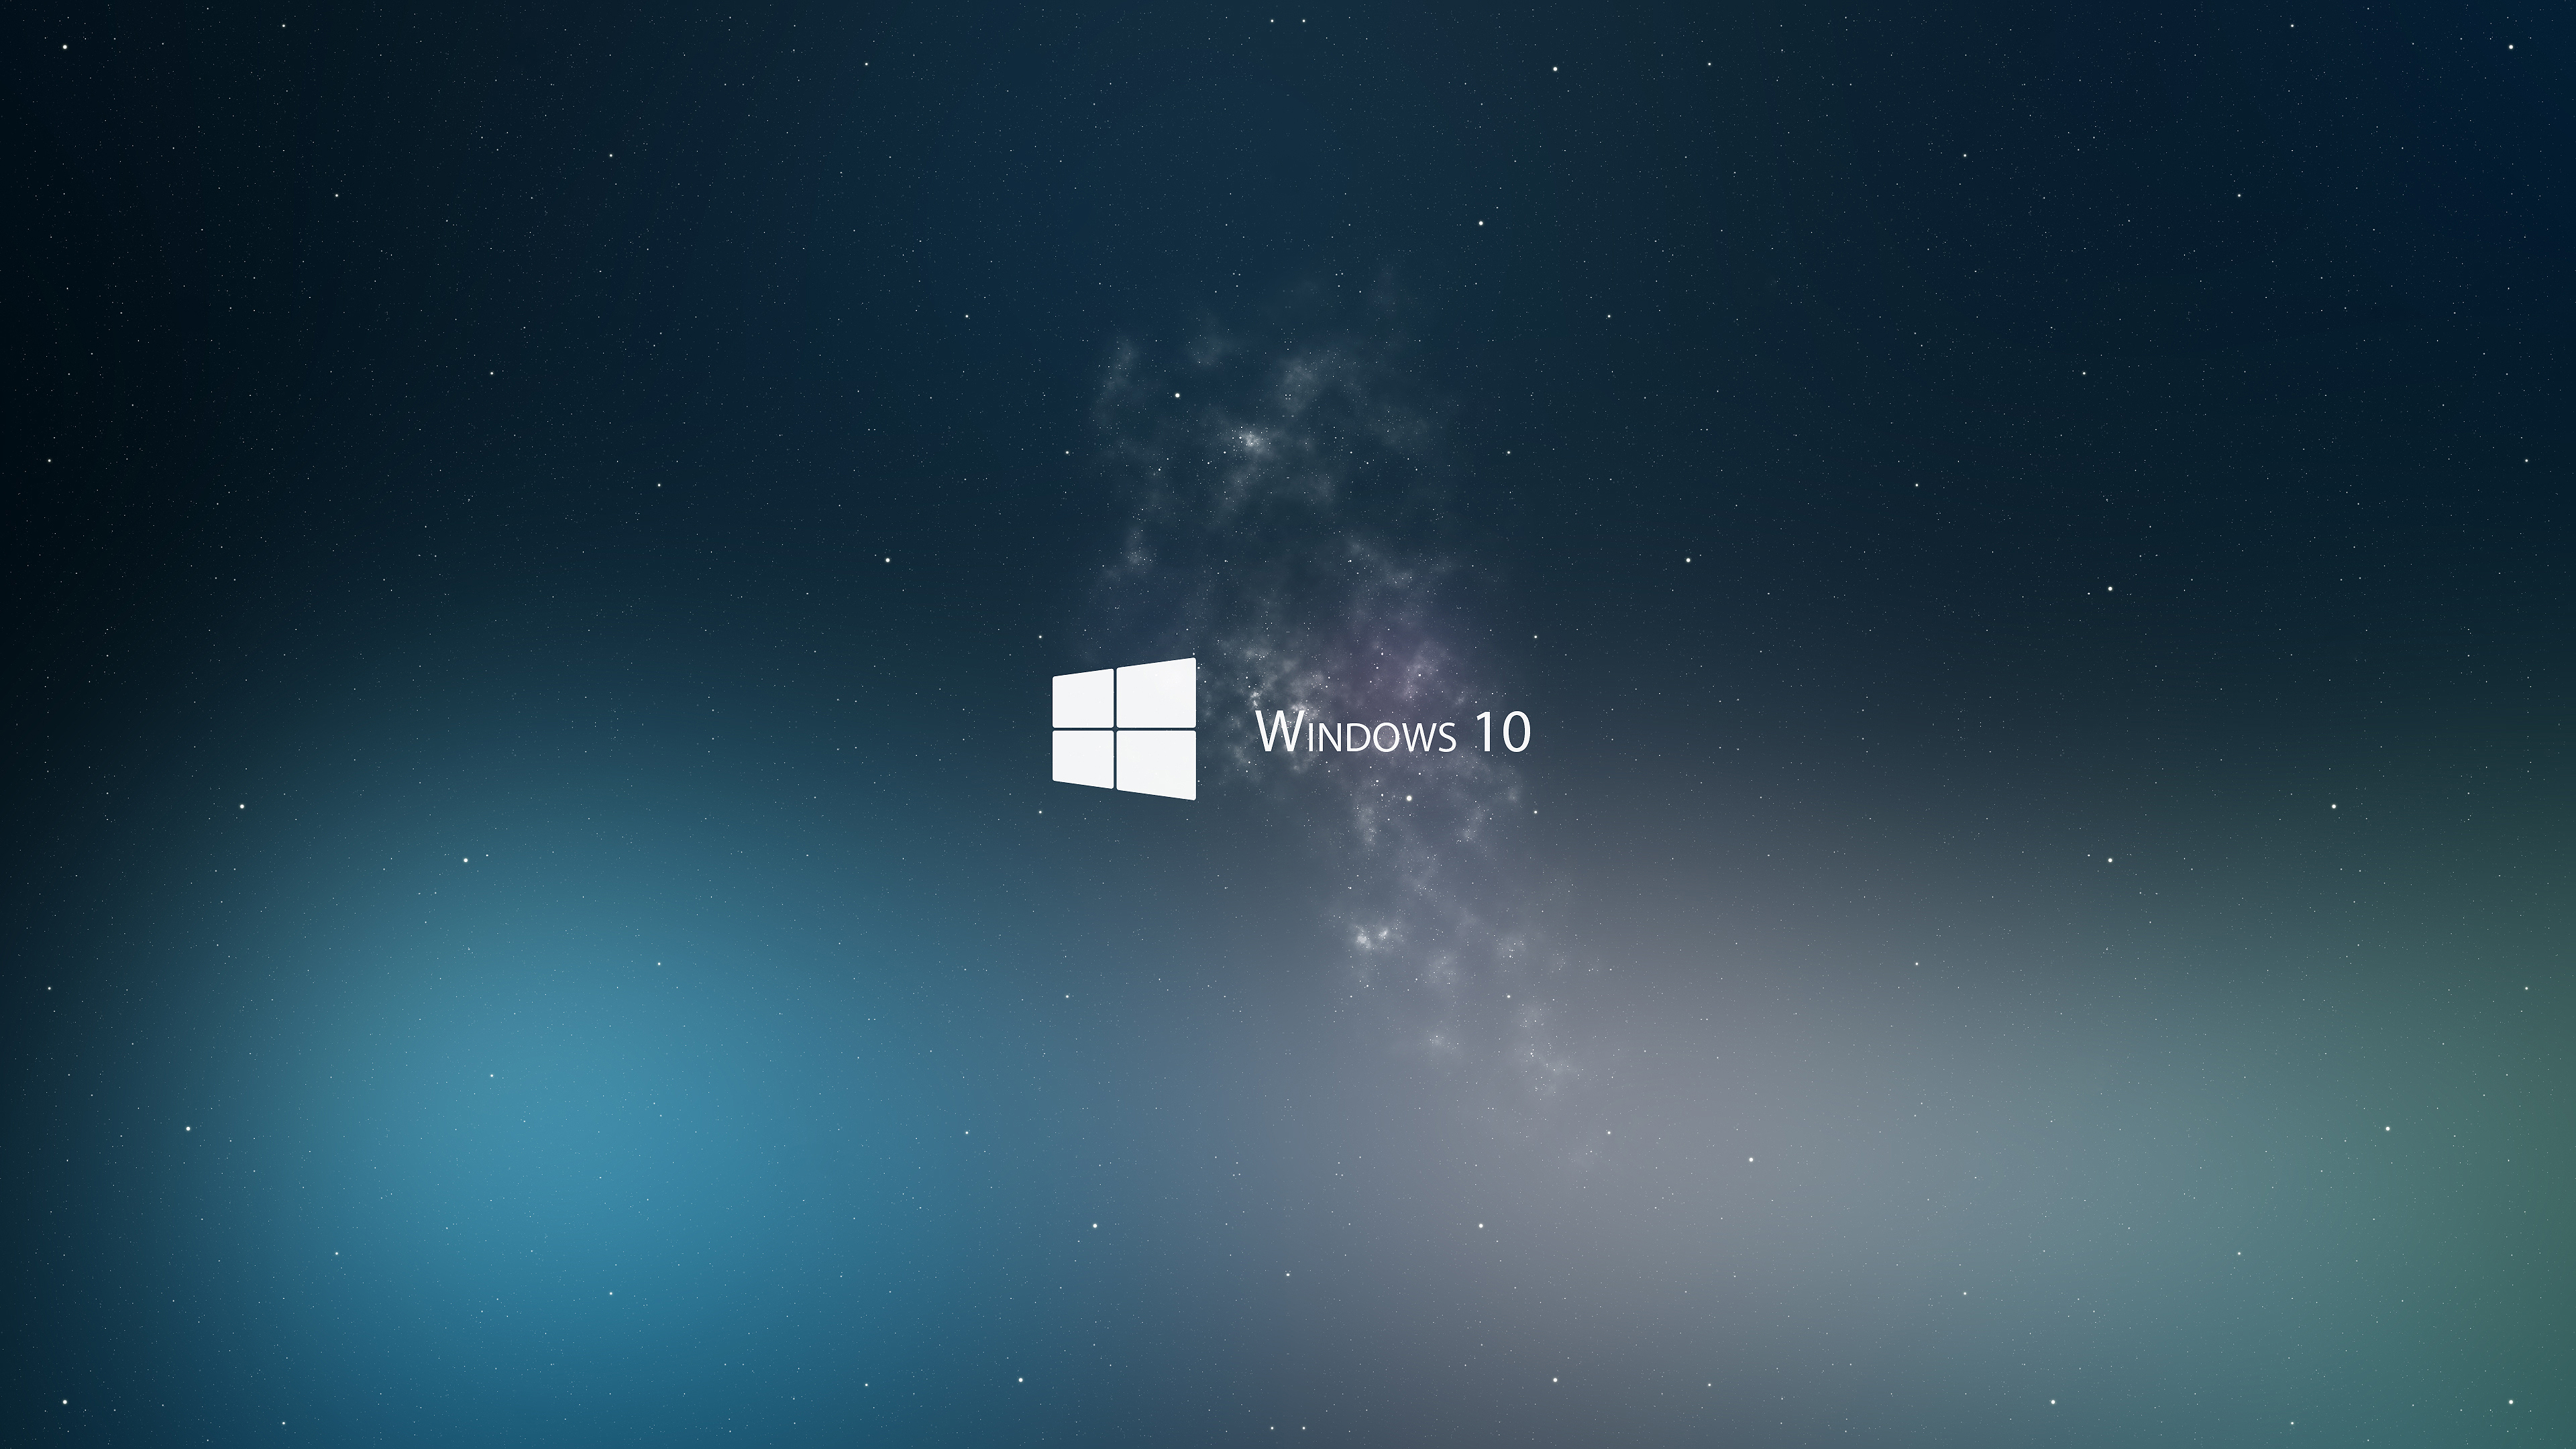 Windows 10 3840x2160